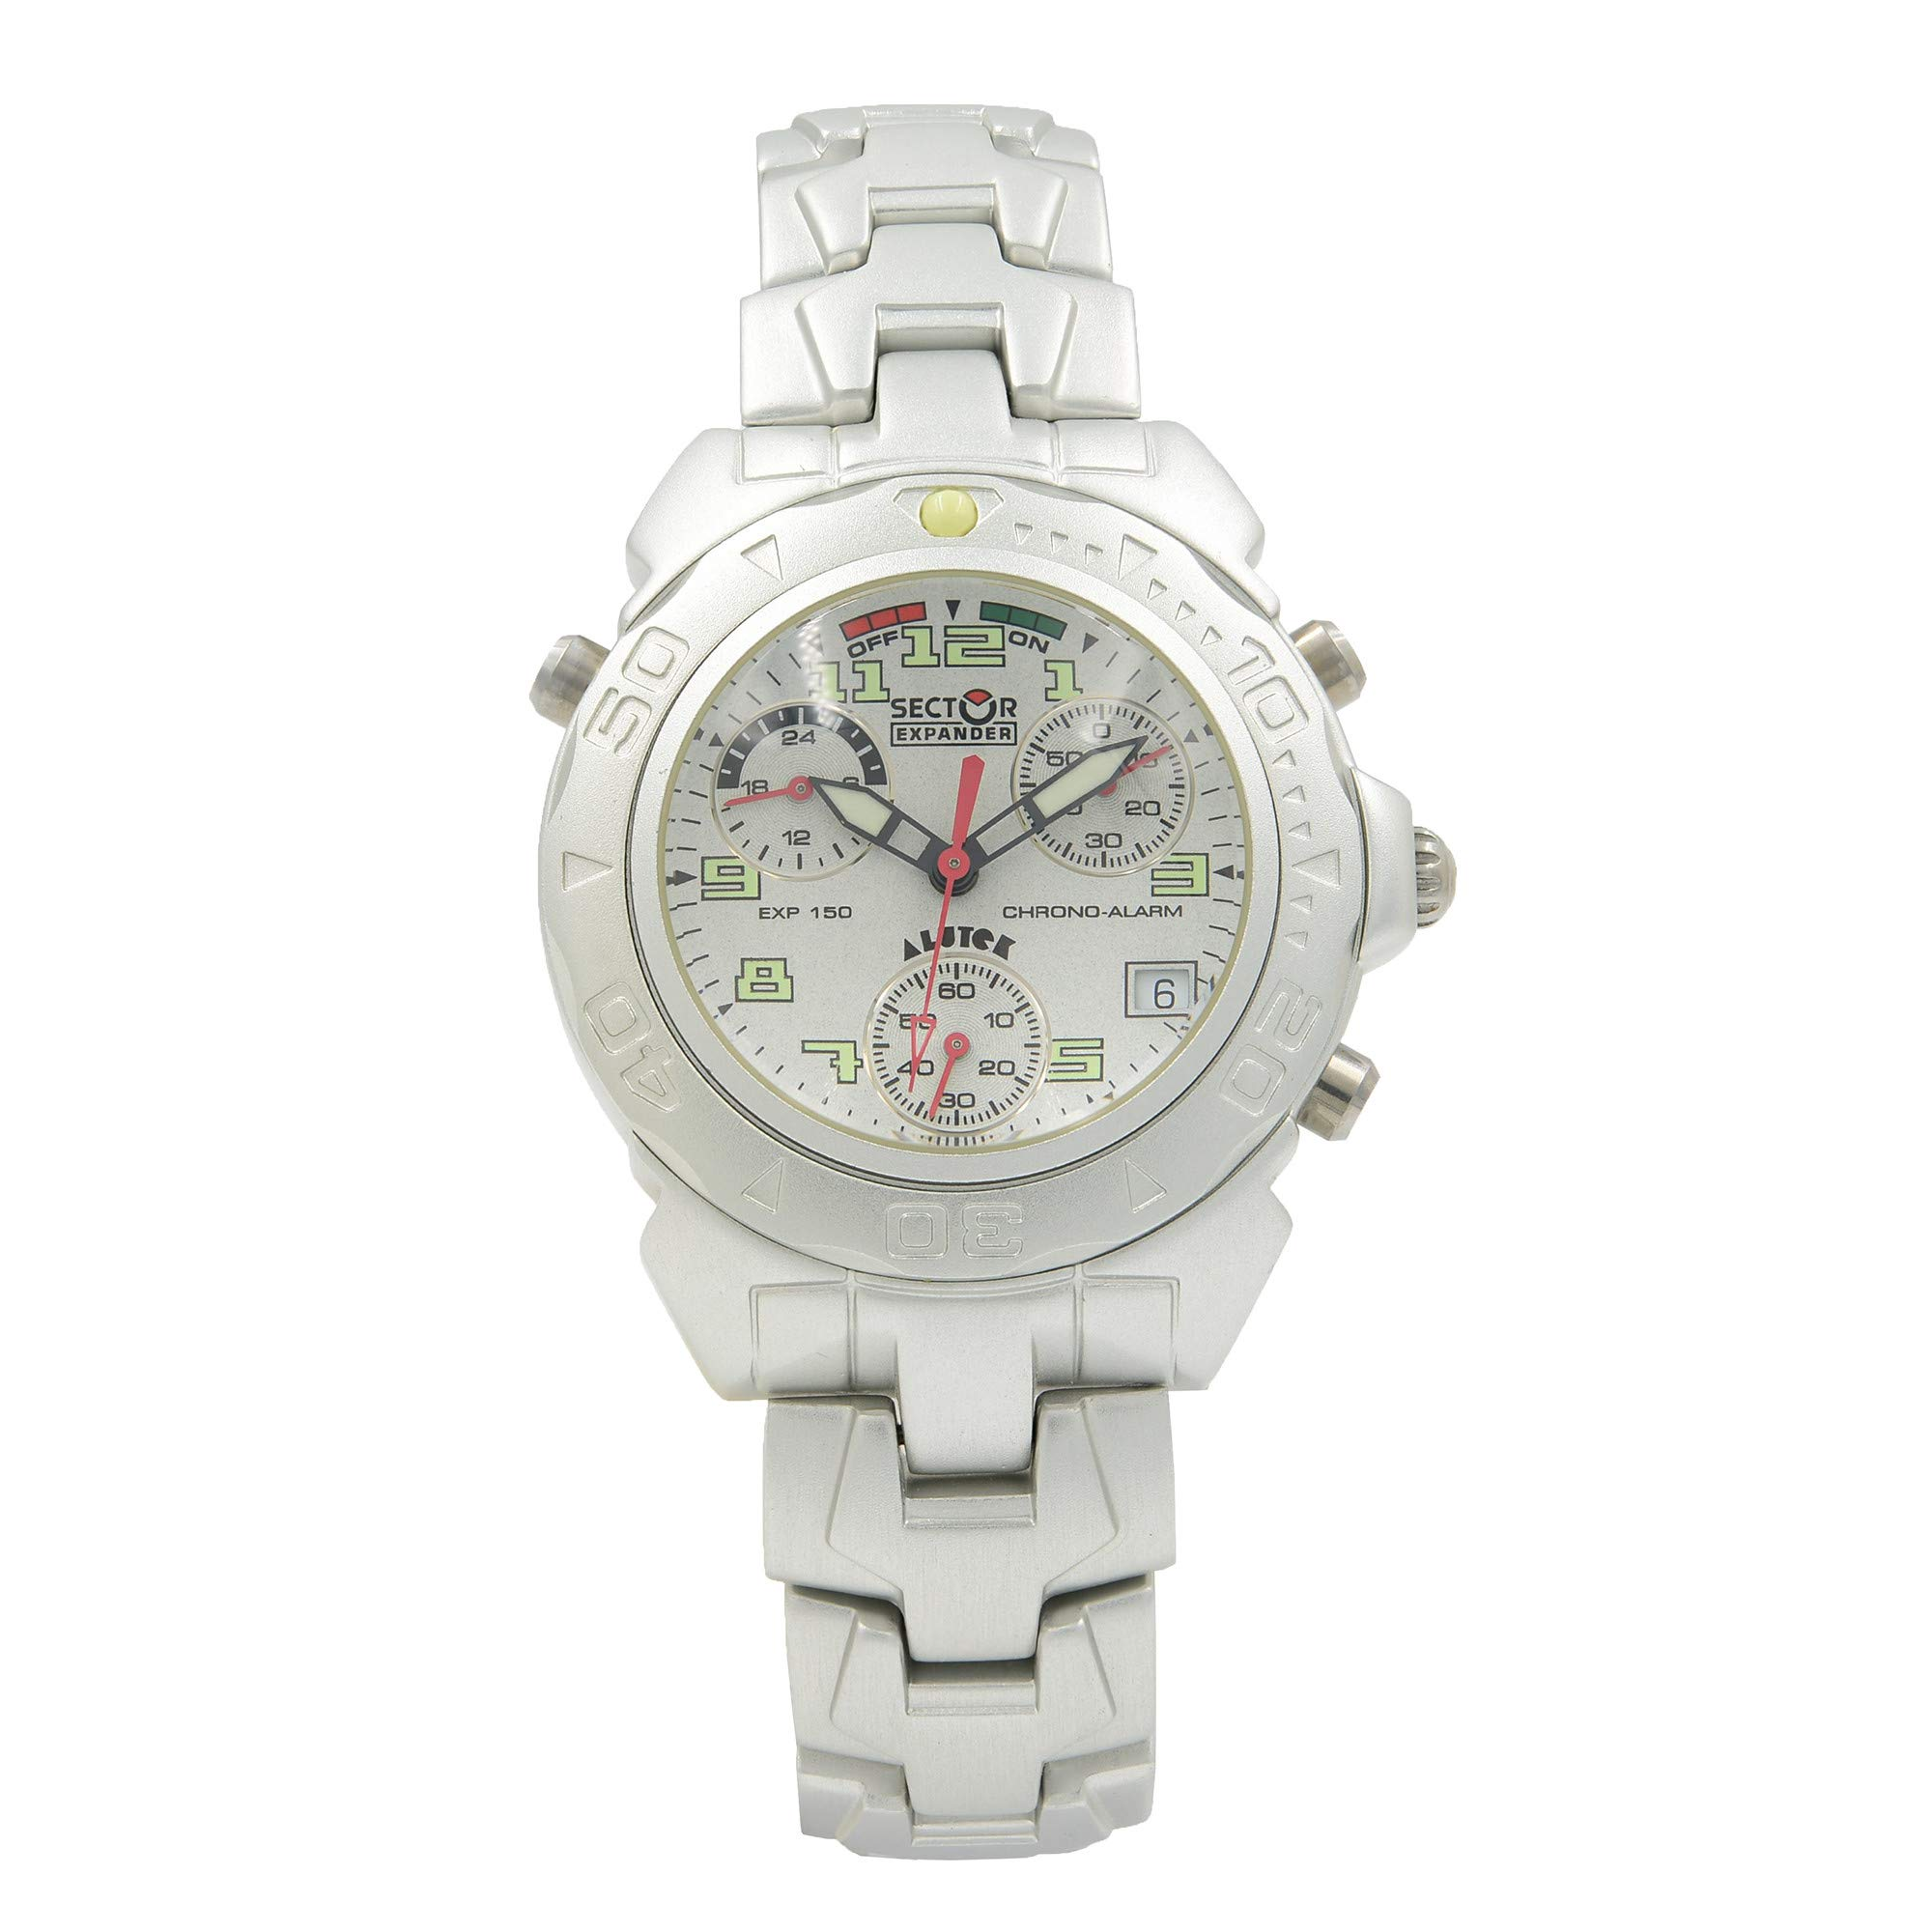 Sector Sector Quartz Male Watch 150 (Certified Pre-Owned)